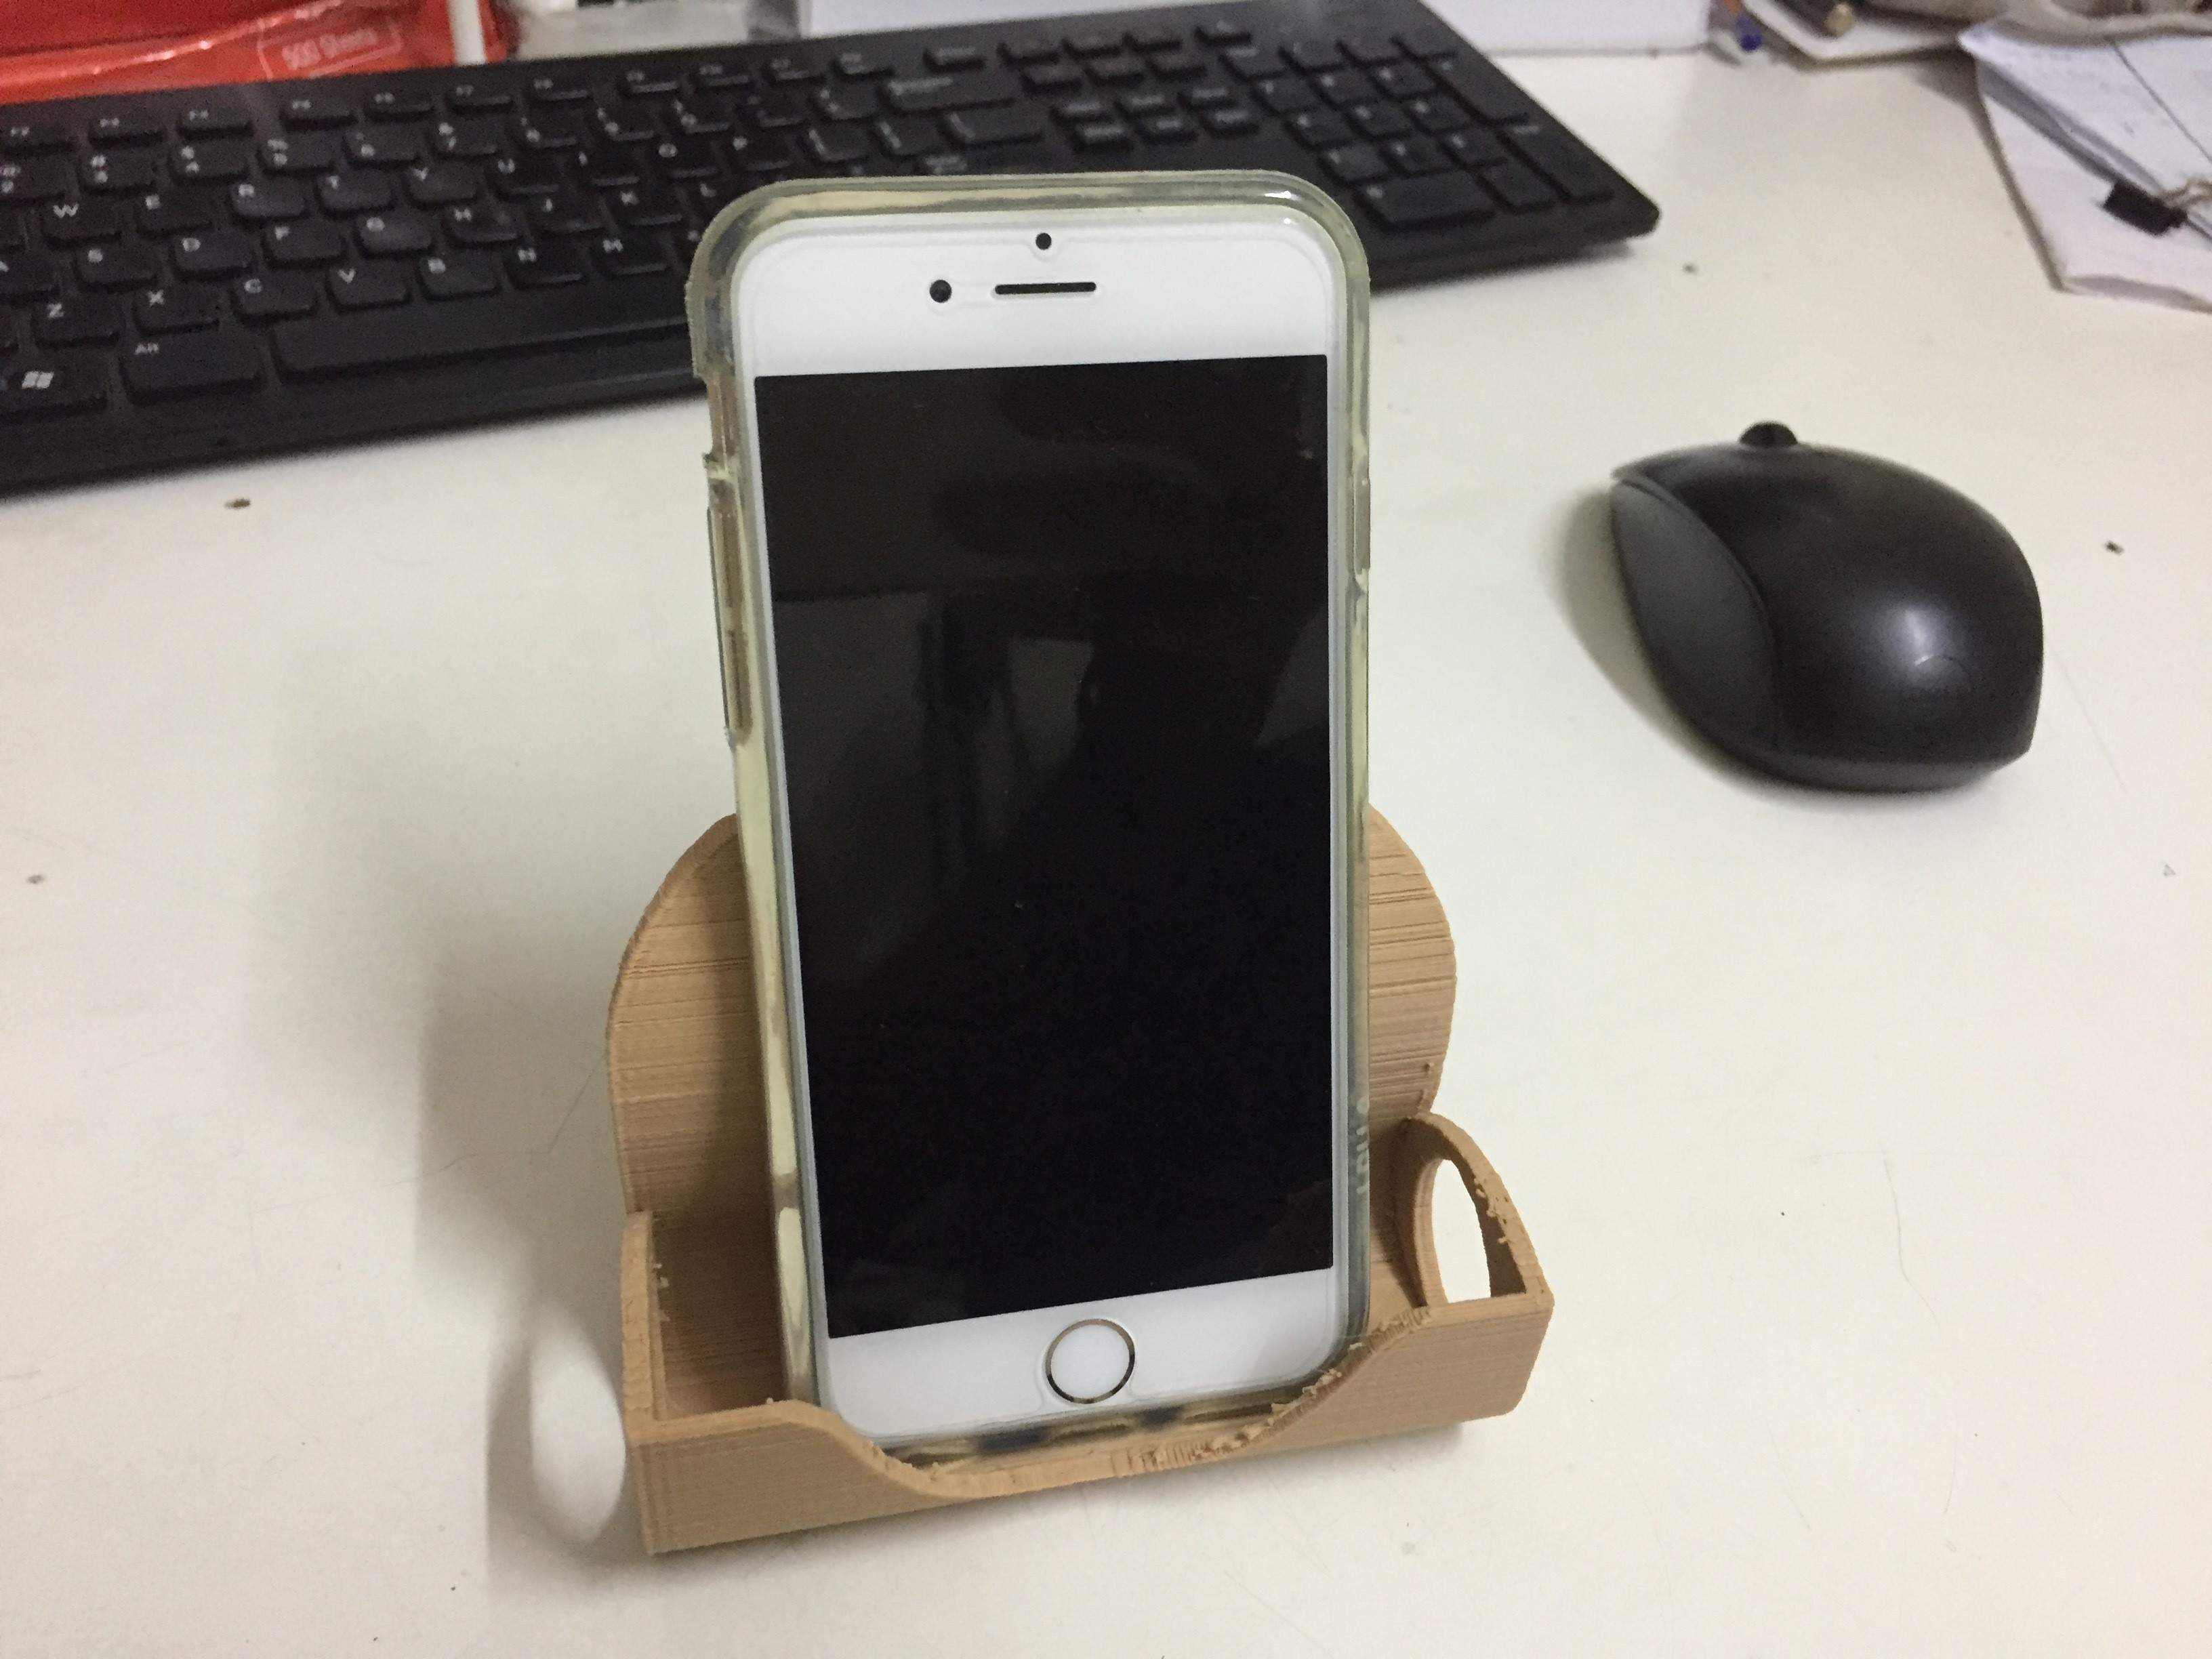 20171024_153217033_iOS.jpg Download free STL file Iphone Docking Station • 3D printer object, Brahmabeej